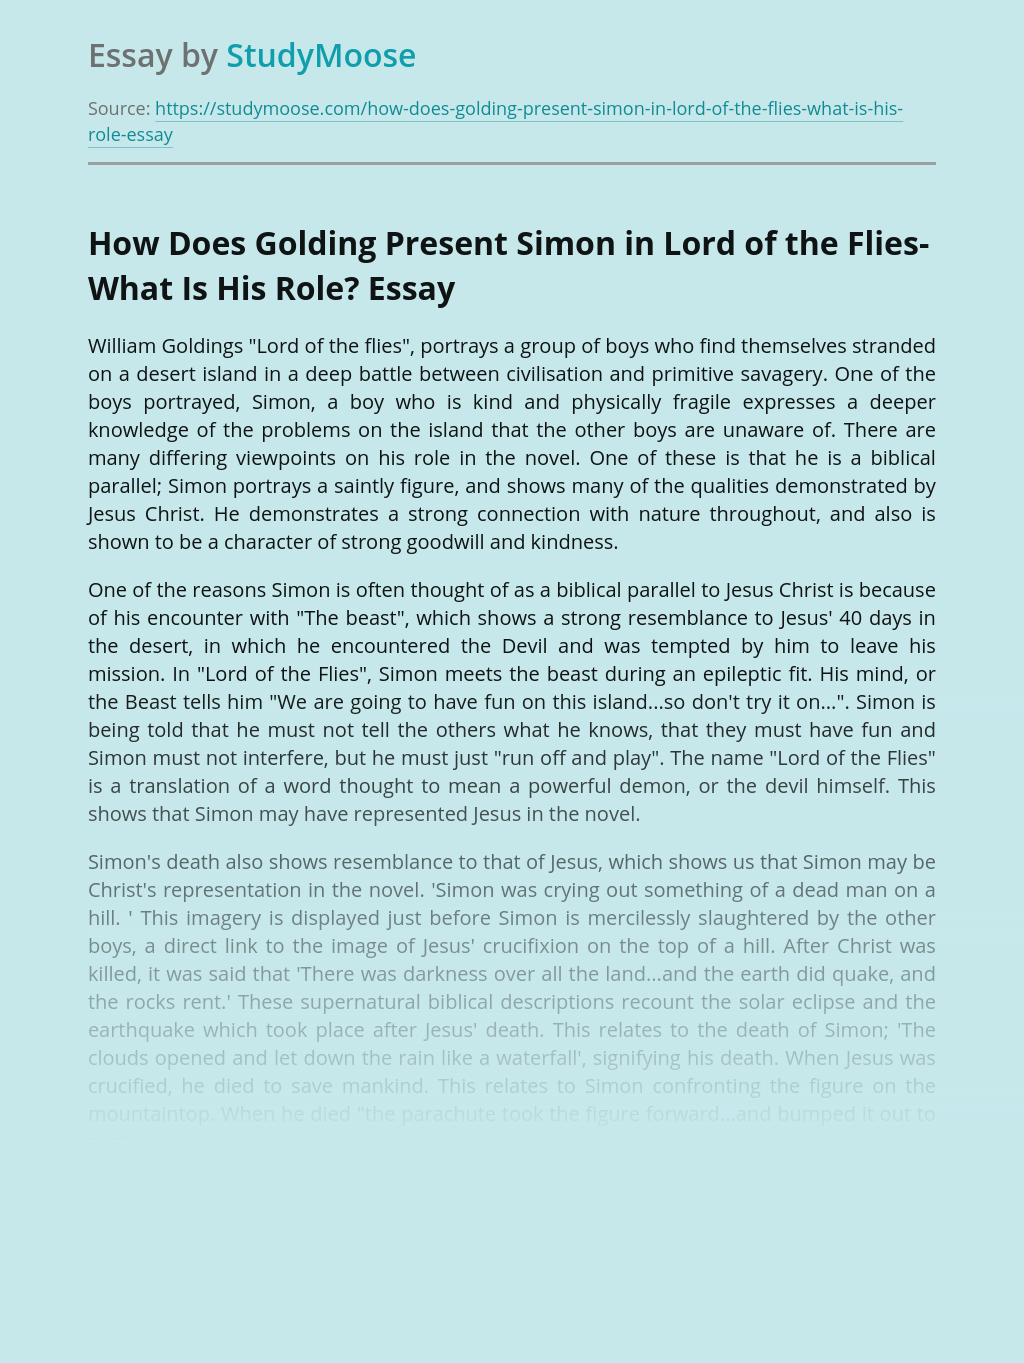 How Does Golding Present Simon in Lord of the Flies-What Is His Role?